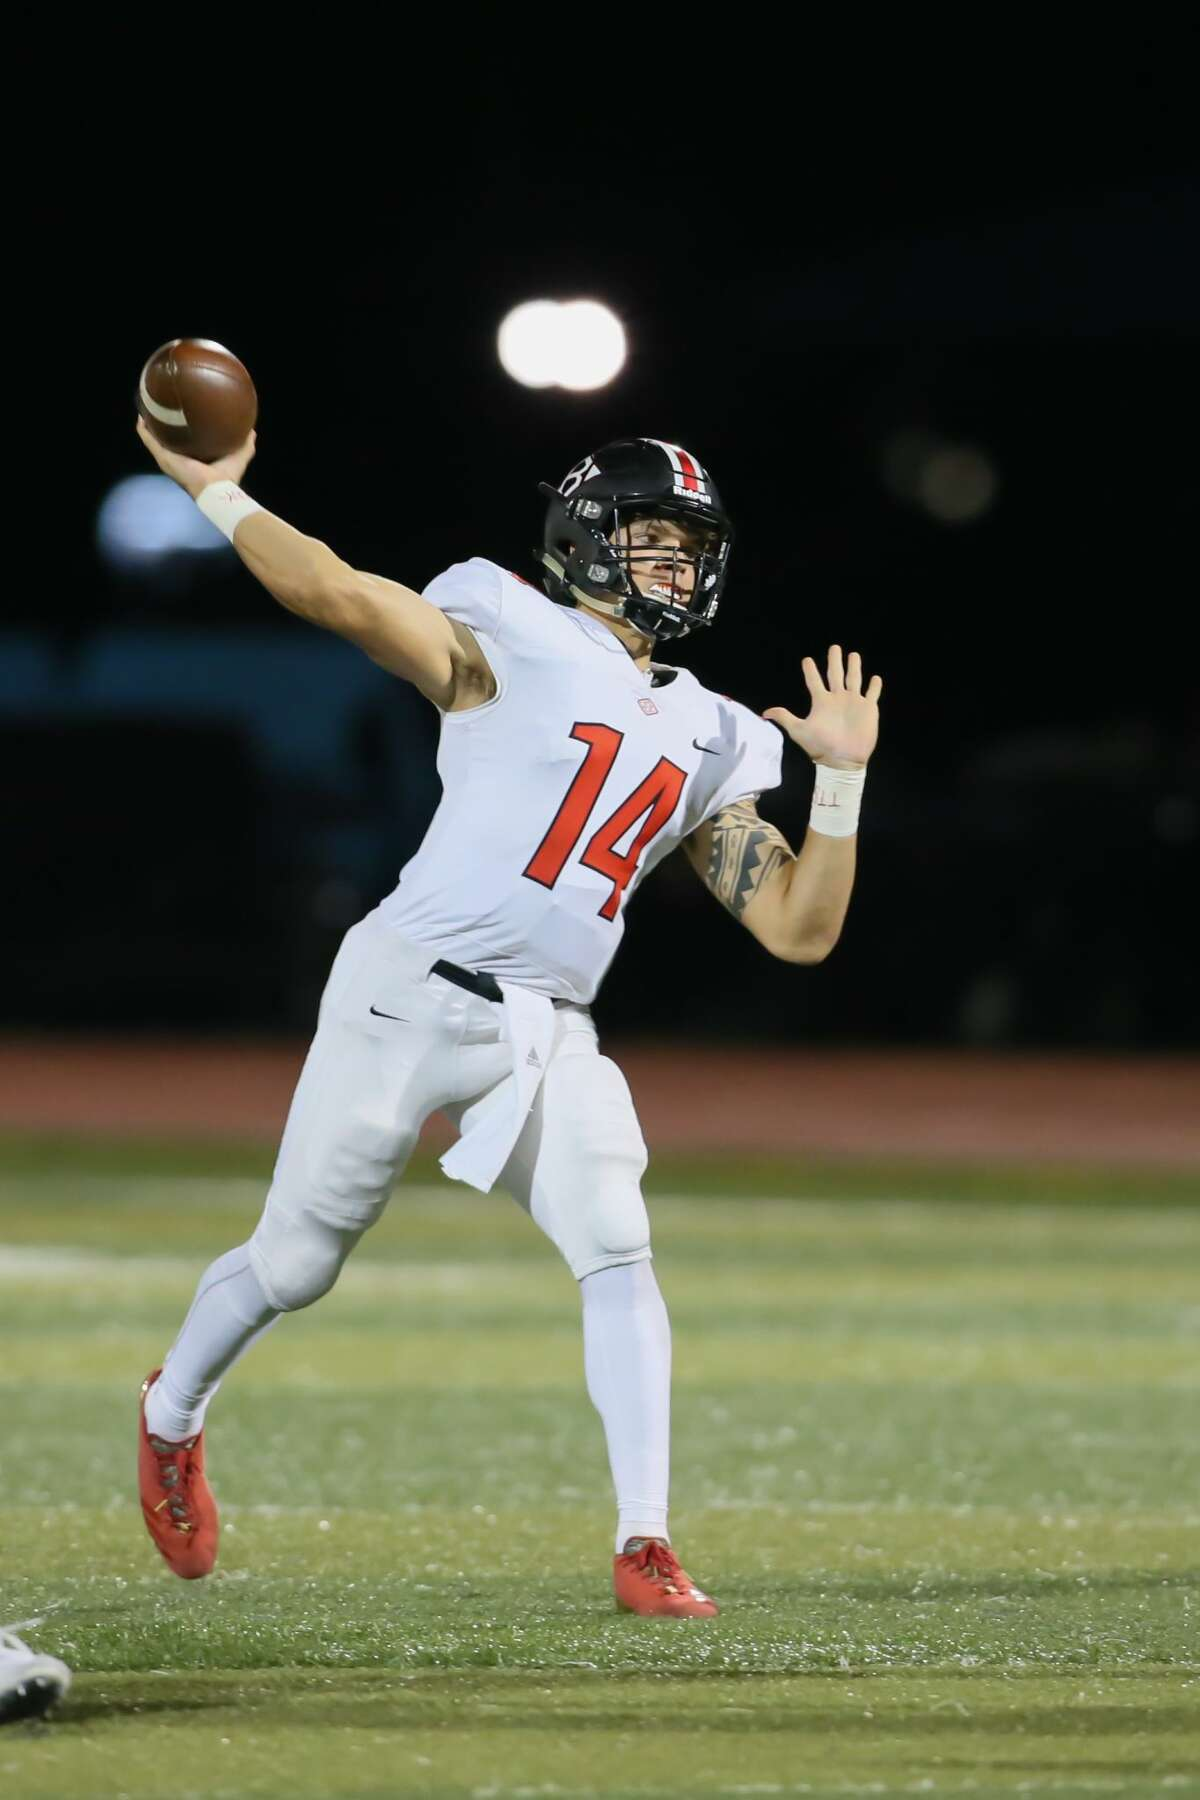 November 10, 2017: Clear Brook quarterback Jaizac Garcia draws back for a long pass during the high school football game between the Clear Brook Wolverines and Dickinson Gators at Sam Vitanza Stadium in Dickinson, Texas. (Leslie Plaza Johnson/Freelance